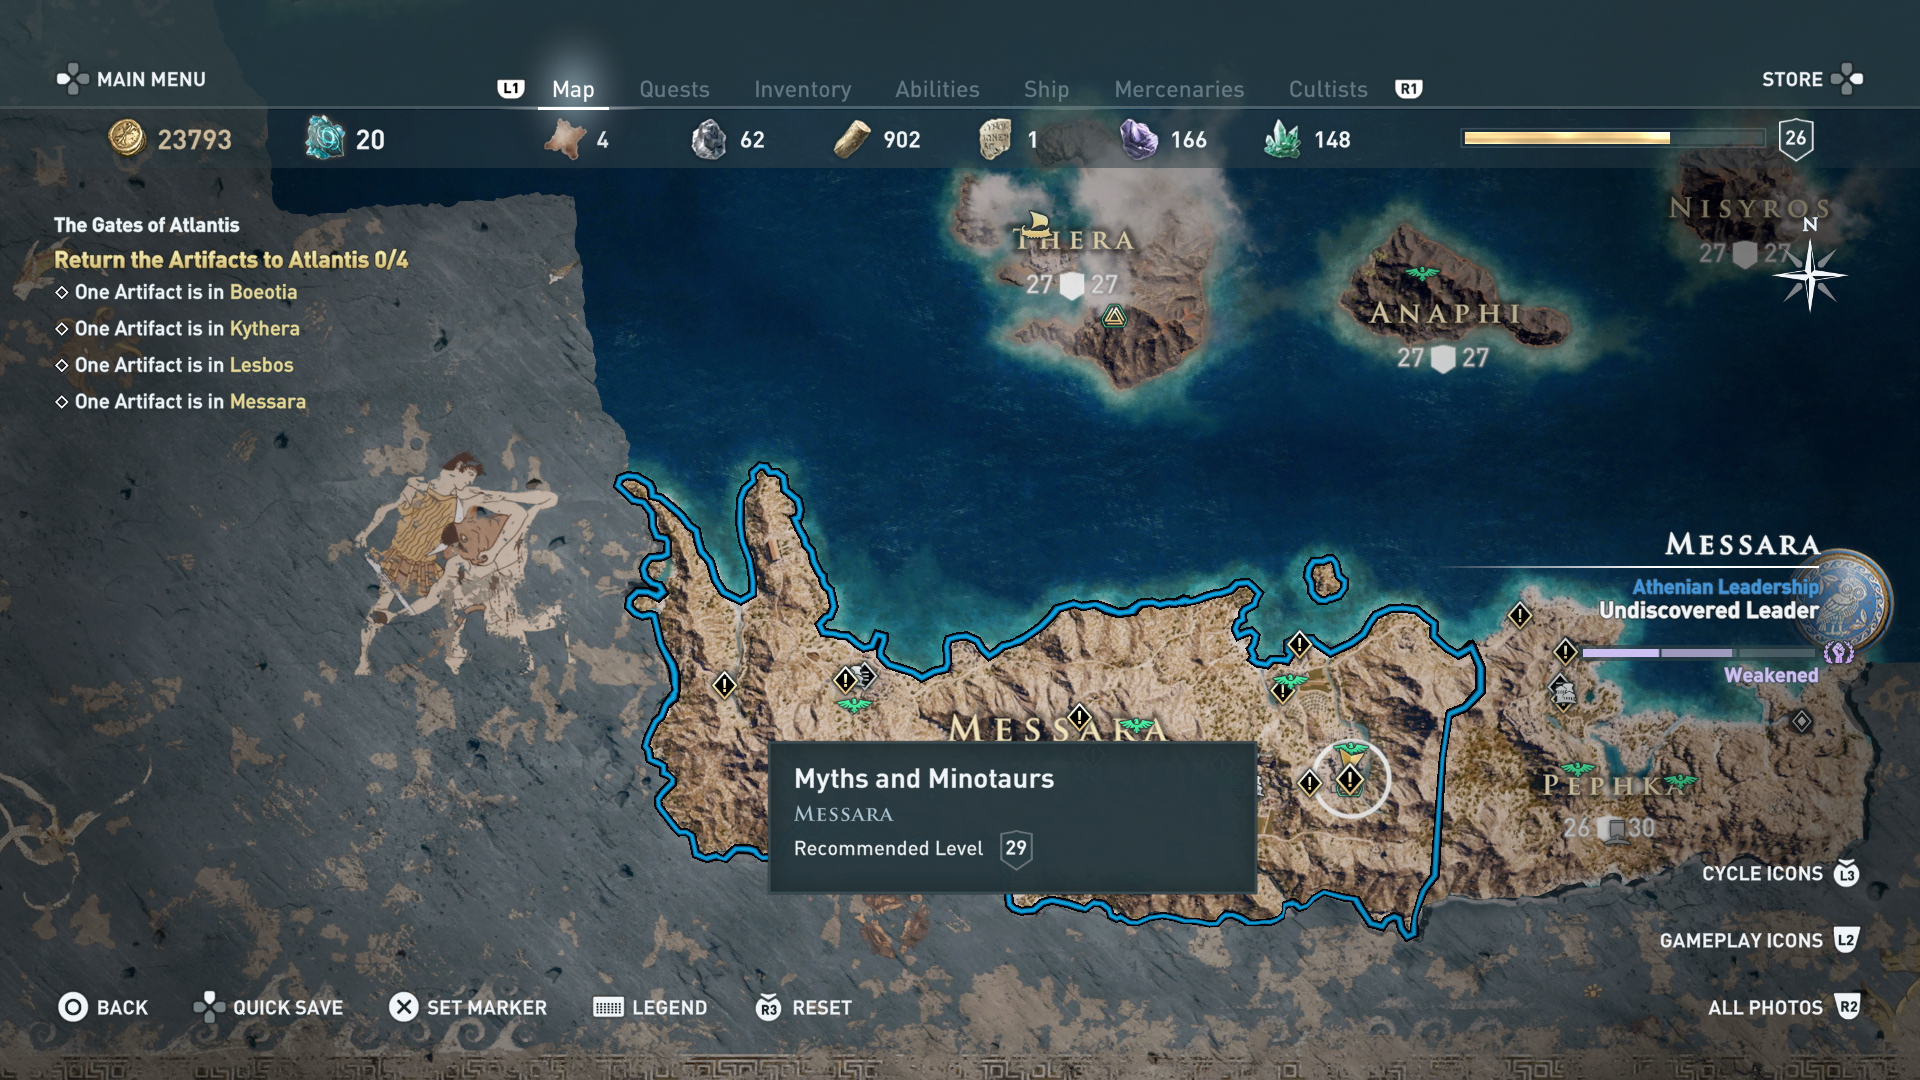 in's Creed Odyssey: How to Find the Four Pieces of ... on atlantis cartoon, atlantis history, atlantis city map, atlantis location theory, atlantis city in the sea, atlantis discovered, atlantis language, atlantis underwater, atlantis city location, atlantis property map, atlantis resort map, atlantis continent map, atlantis the movie, ancient atlantis location, atlantis hotel location, atlantis location found, atlantis in nassau, atlantis vinny,